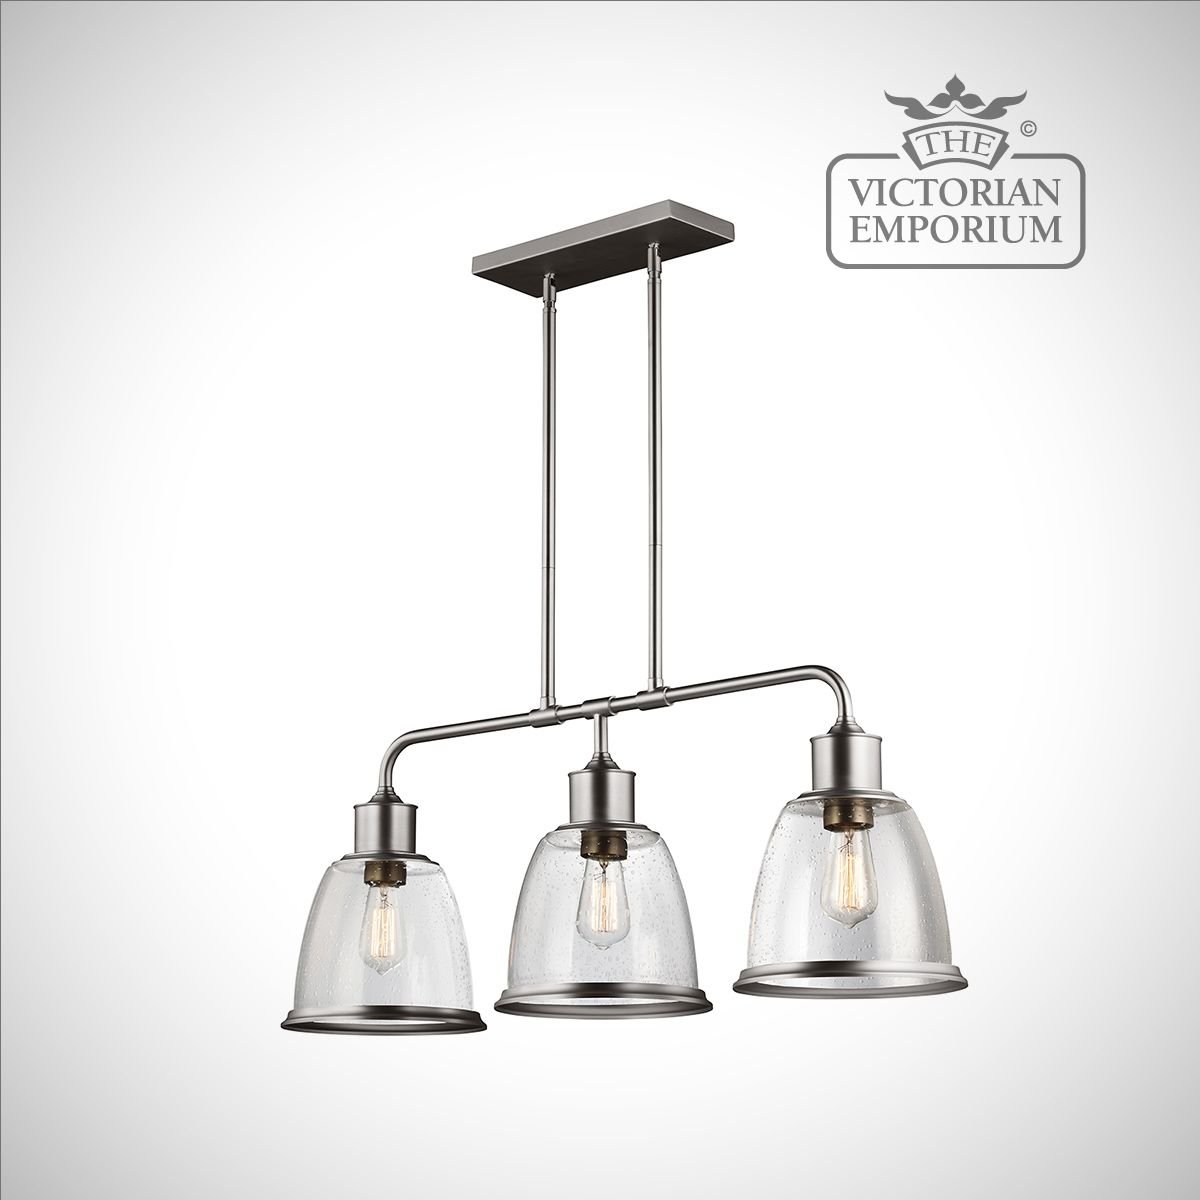 Hobsons Three Light Island Ceiling Pendant In Satin Nickel - Three light island pendant